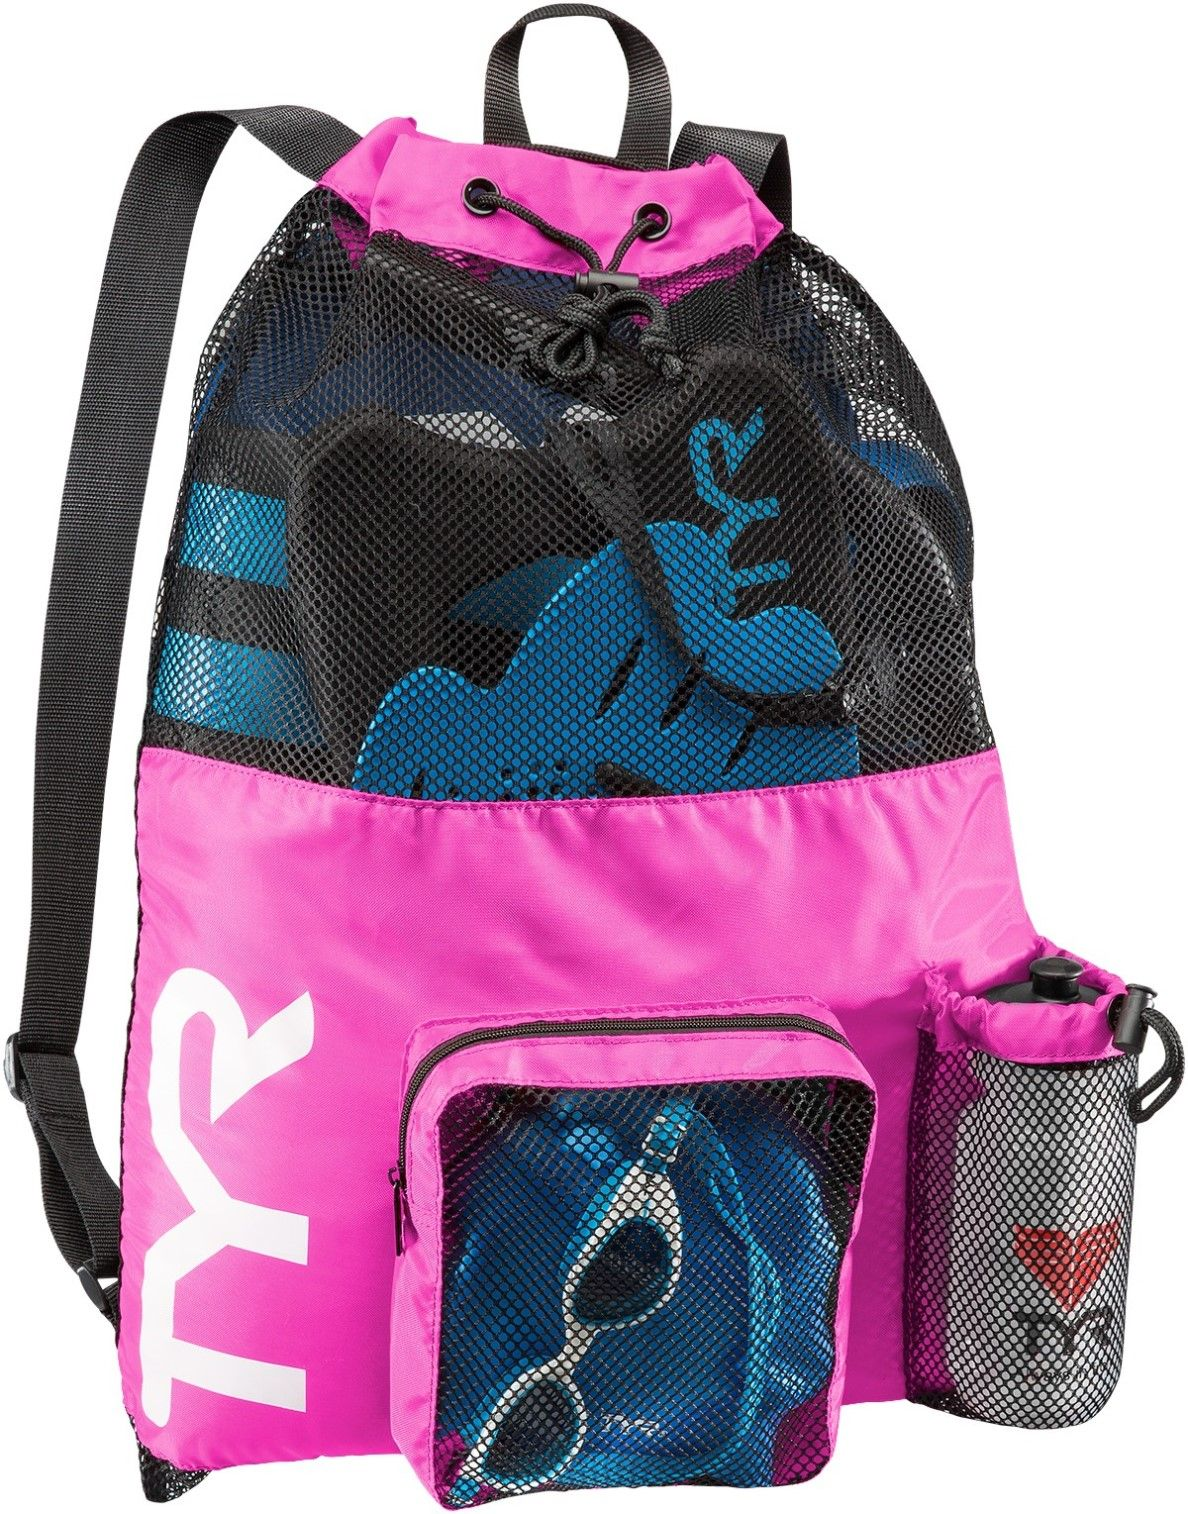 5cf4f00e1be TYR Big Mesh Mummy Backpack: Pink swim mesh bag for your pool workout, open  water swim, or water fitness cardio workout to carry swim training aids or  pool ...